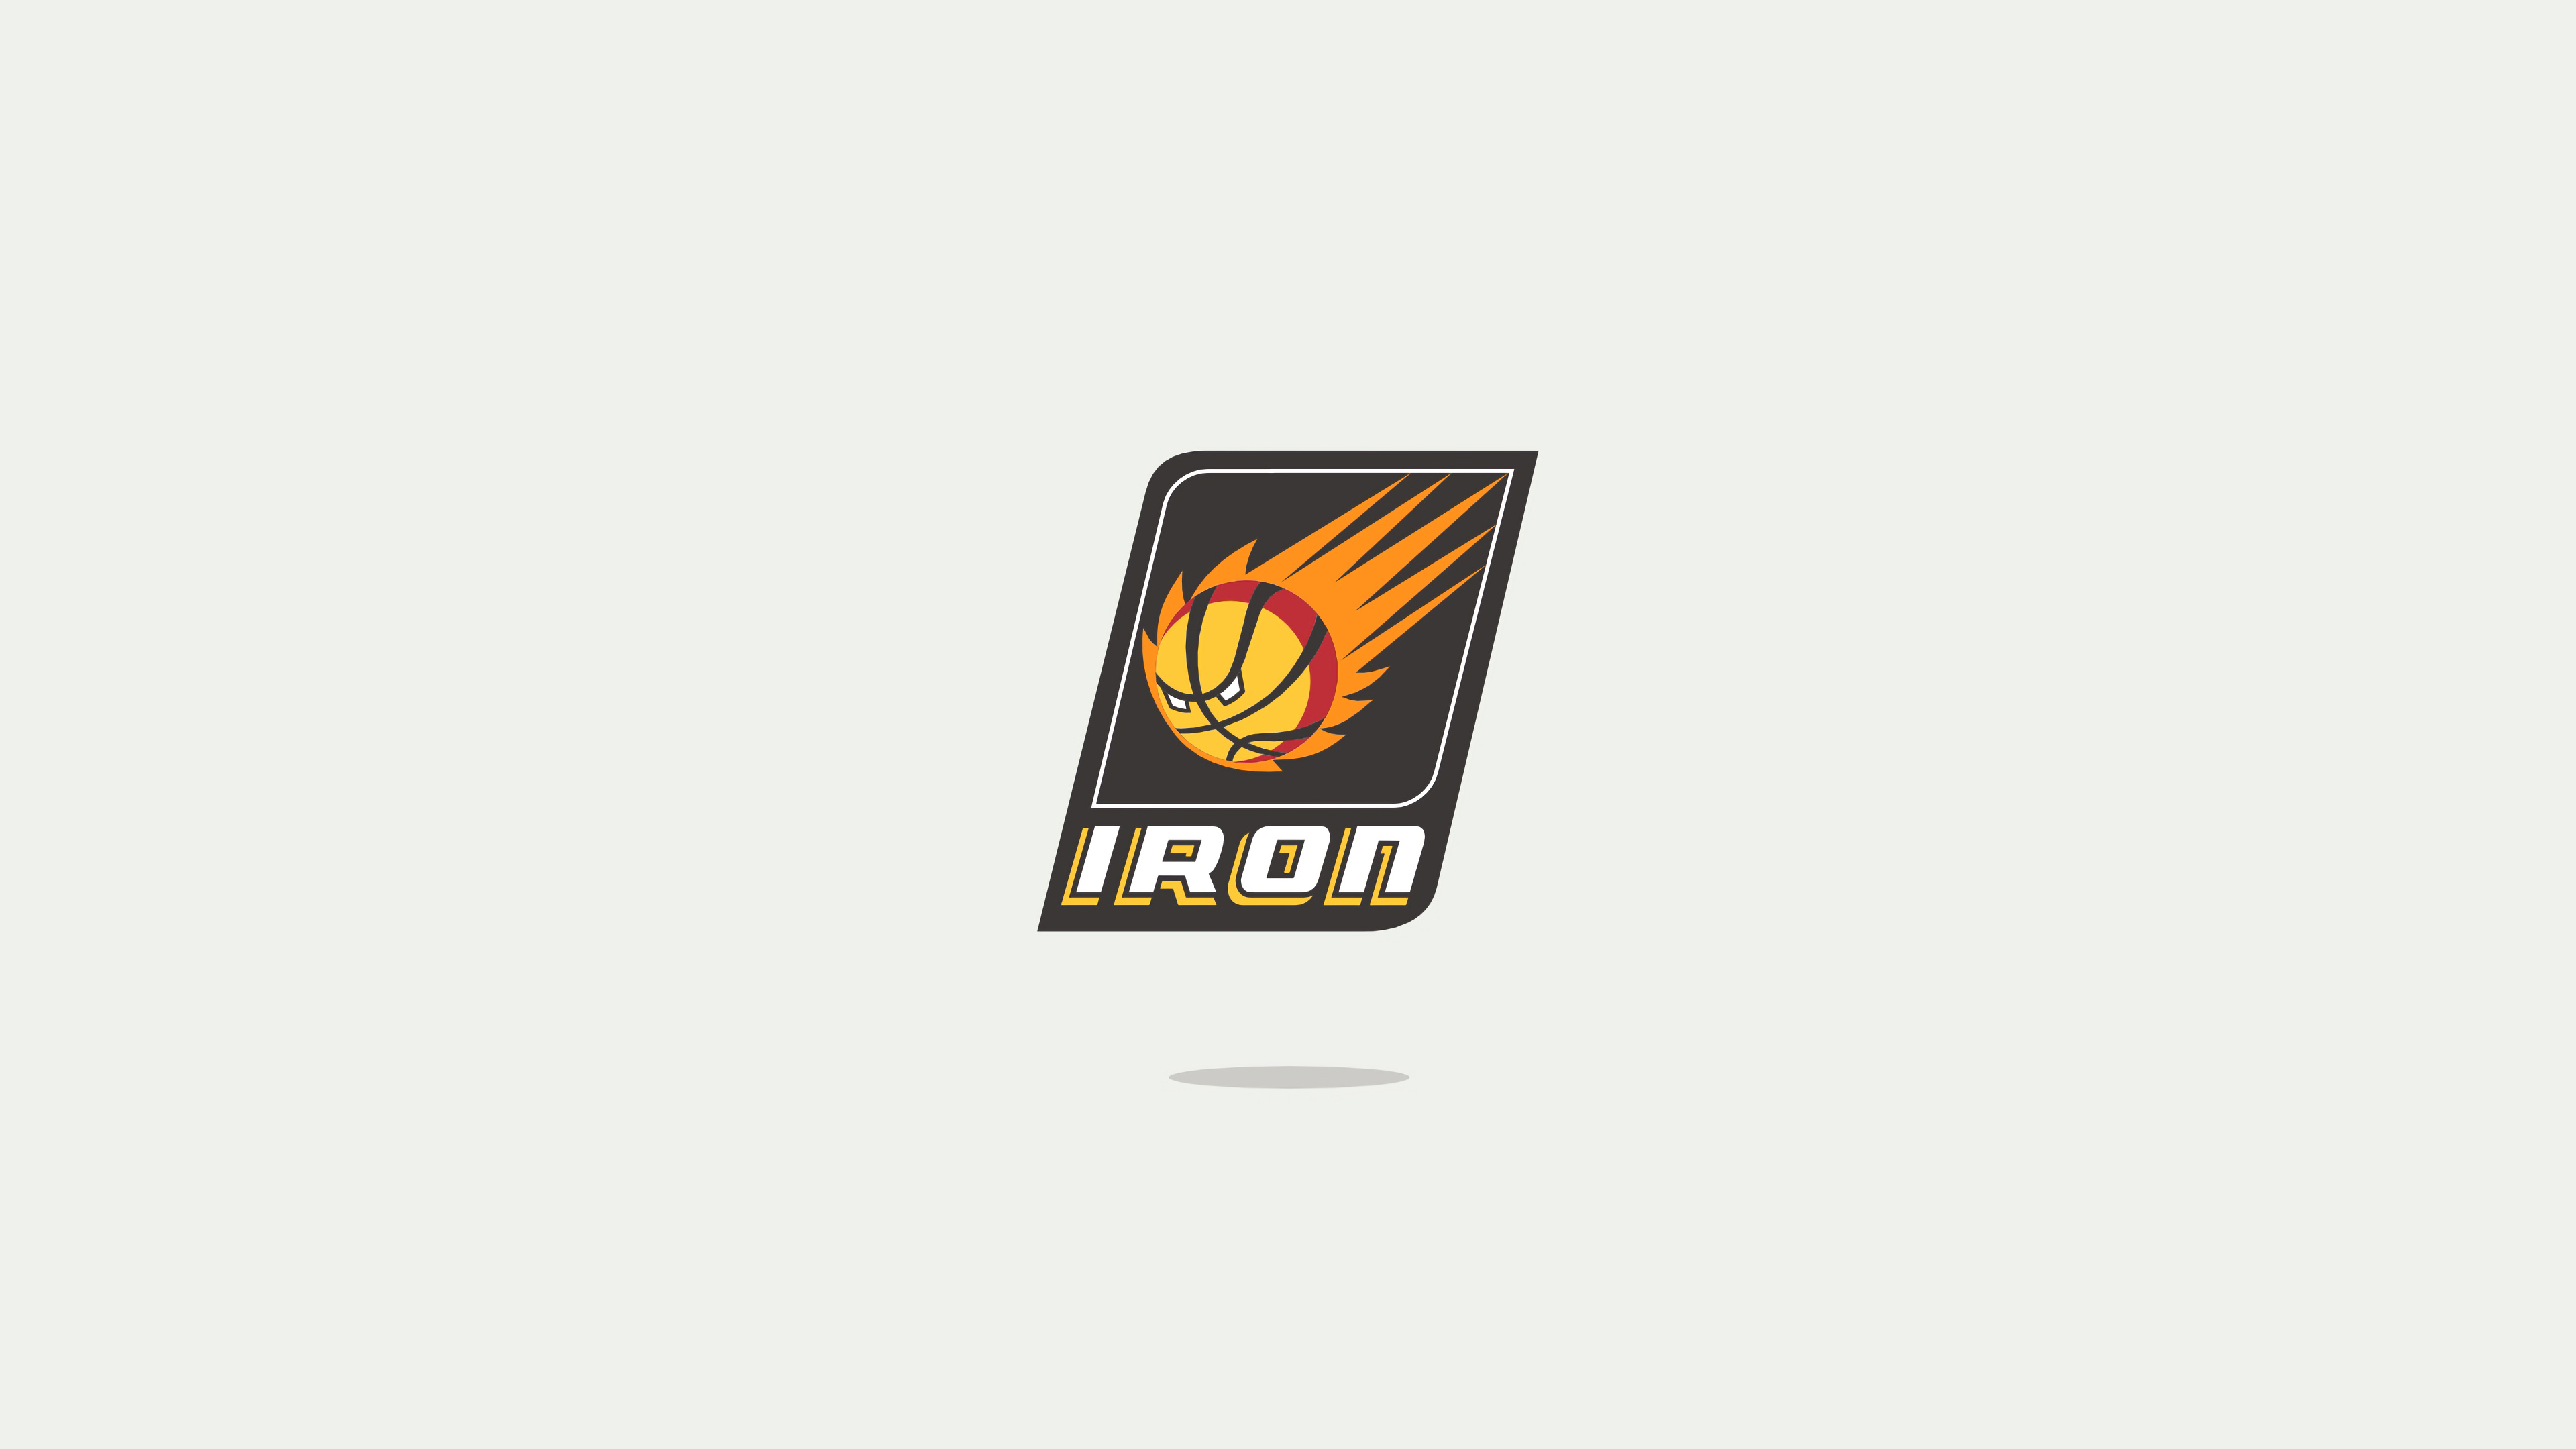 iron man minimal logo 1568055380 - Iron Man Minimal Logo - superheroes wallpapers, minimalist wallpapers, minimalism wallpapers, iron man wallpapers, hd-wallpapers, behance wallpapers, 4k-wallpapers